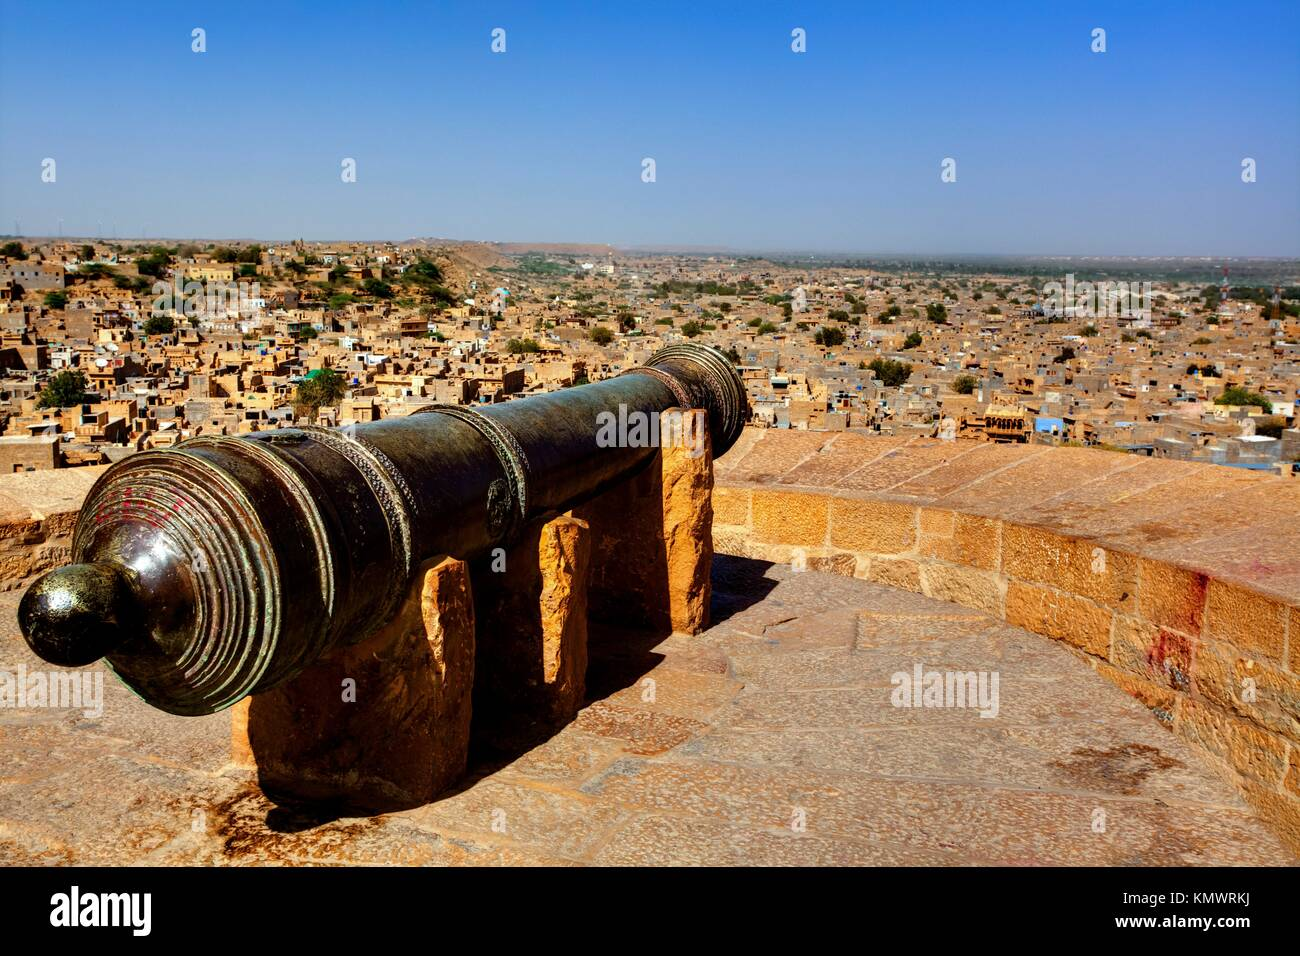 cannon protecting jaisalmer in rajasthan state in india - Stock Image